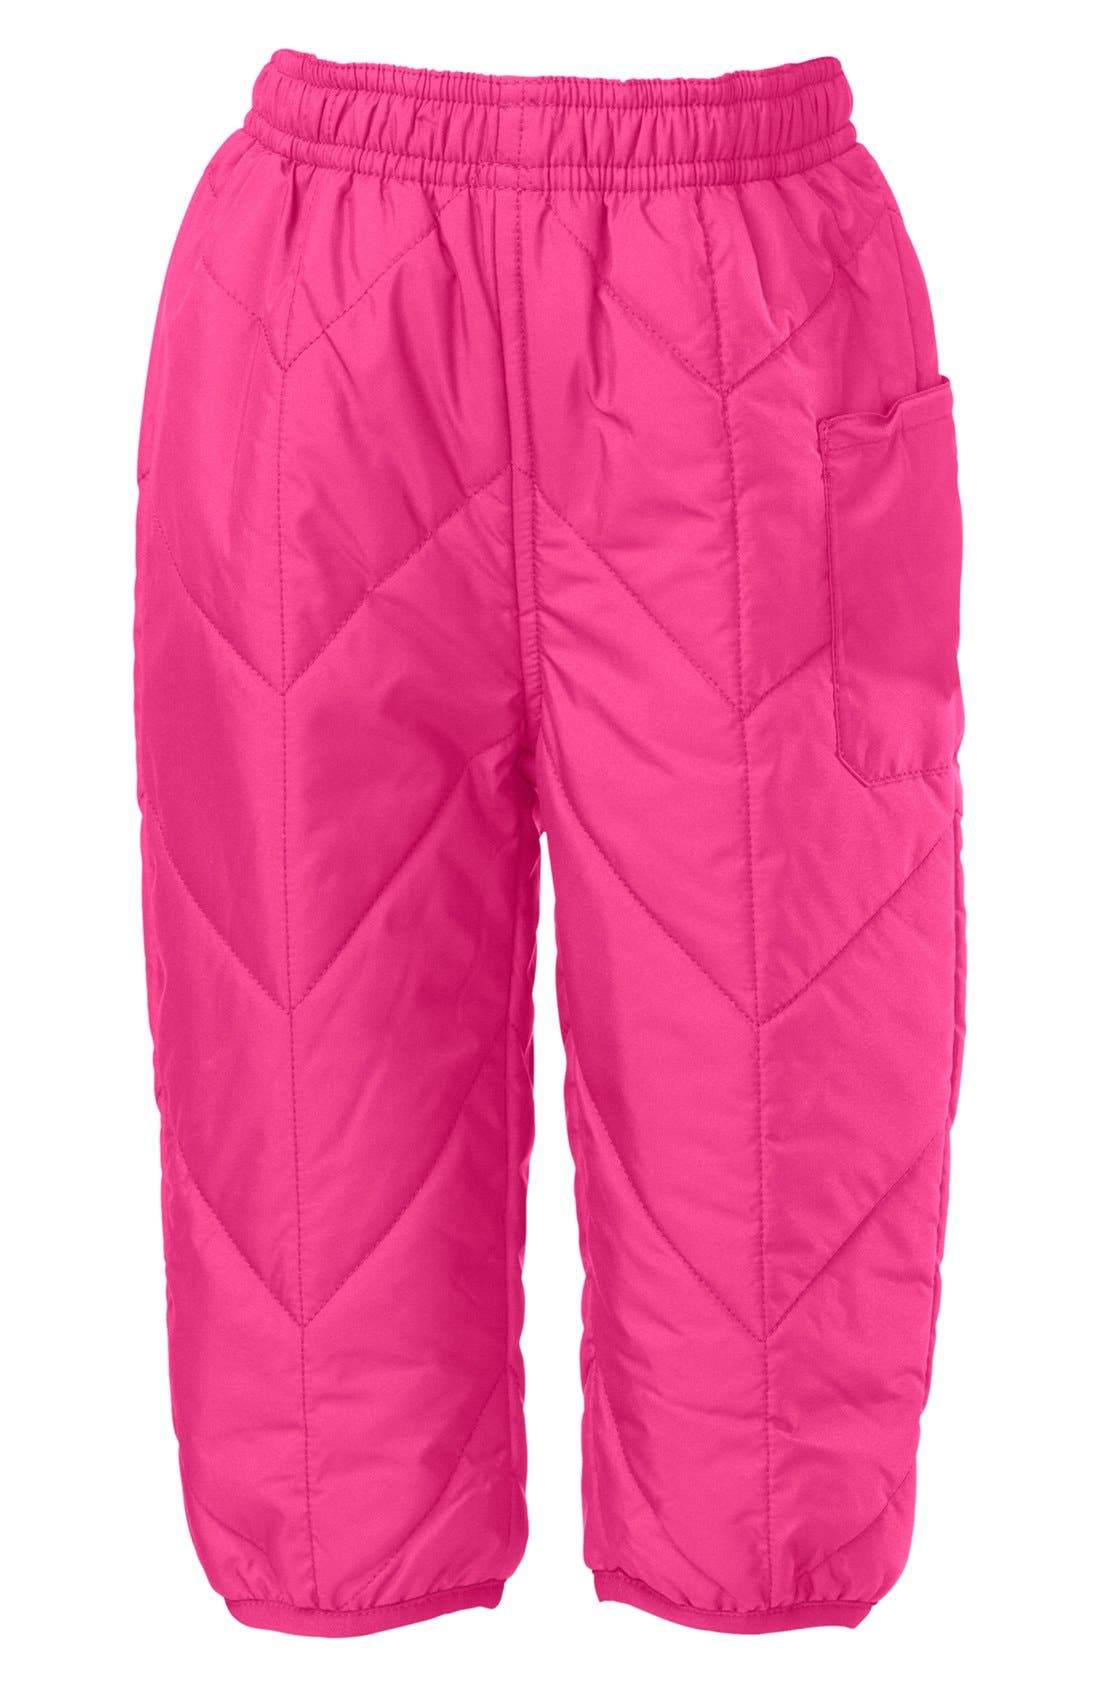 Alternate Image 1 Selected - The North Face 'Perrito' Snow Pants (Baby Girls)